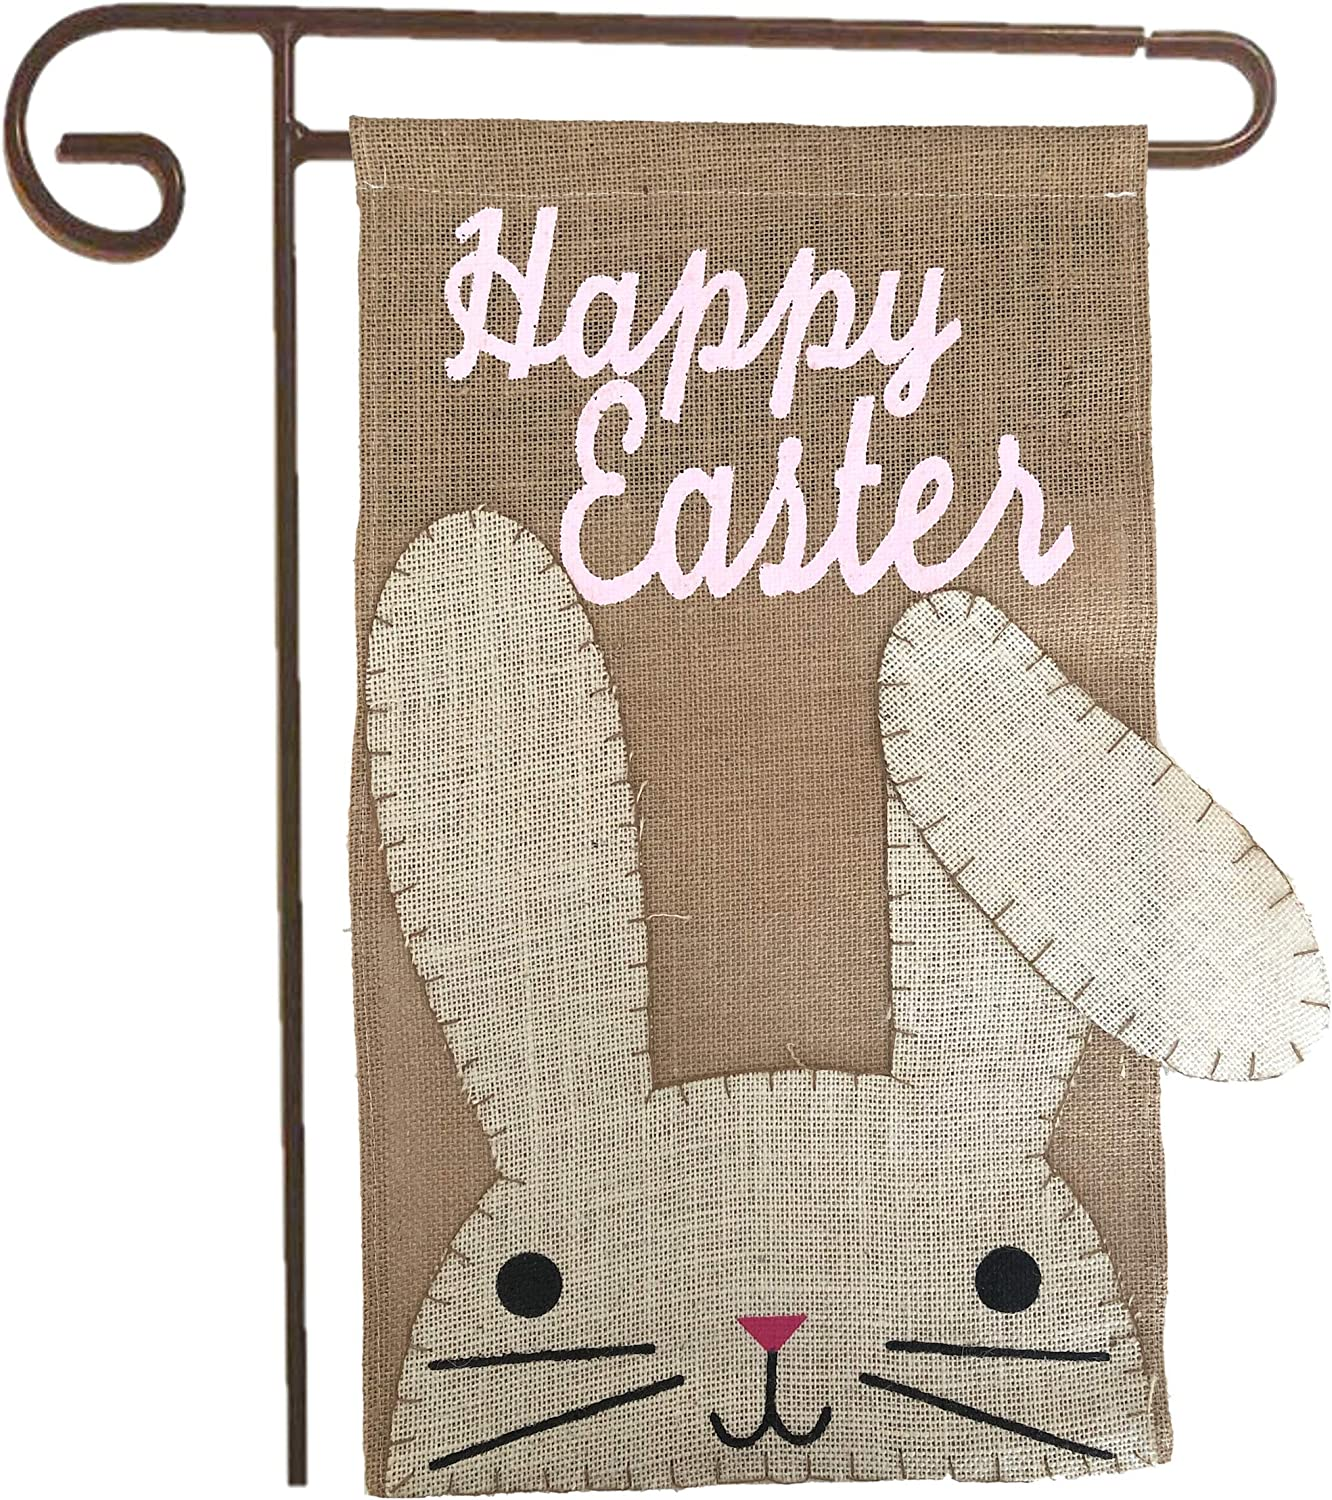 """Partay Shenanigans Easter Garden Flag - 12"""" x 21"""" Happy Easter Burlap Rustic Yard Flag for Outdoor Spring Home Garden Decoration (Pole not Included)"""